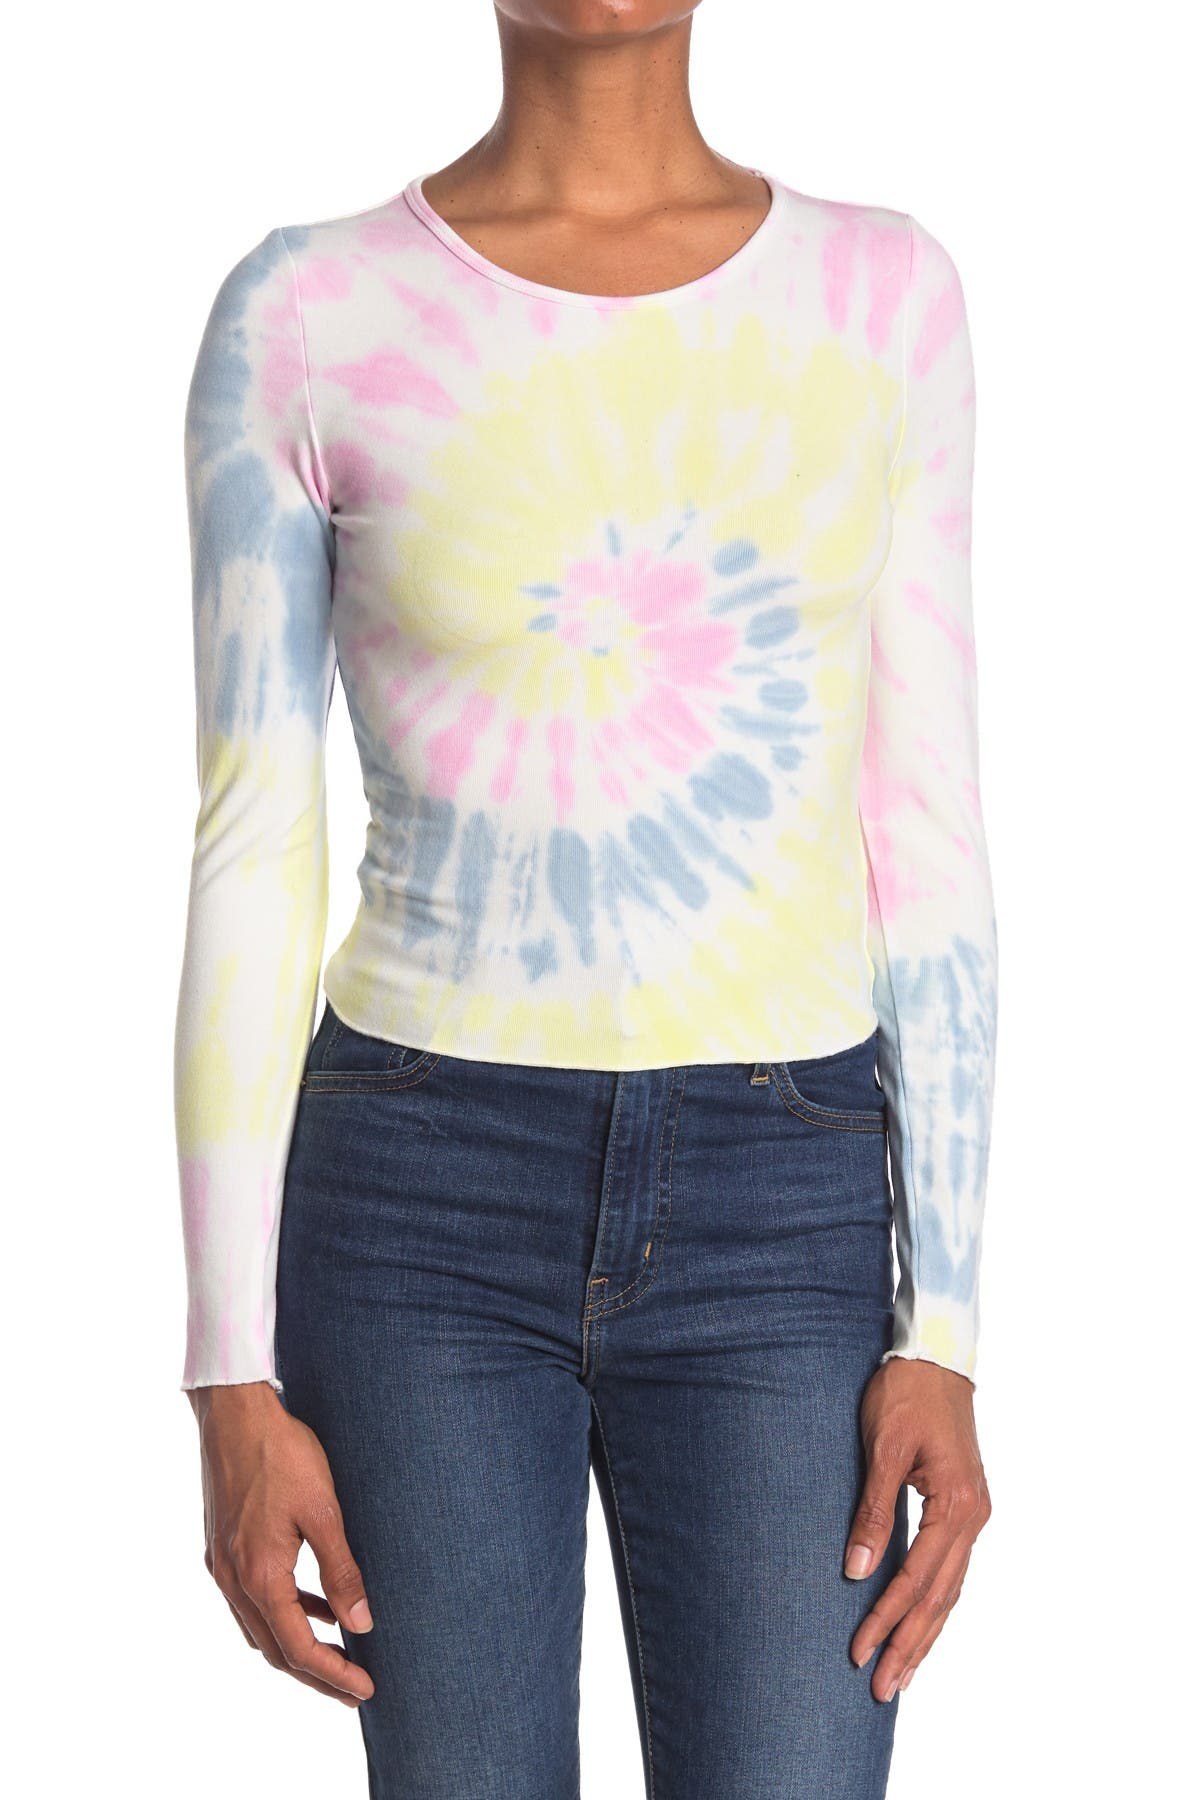 Image of Elodie Long Sleeve Tie Dye Tee